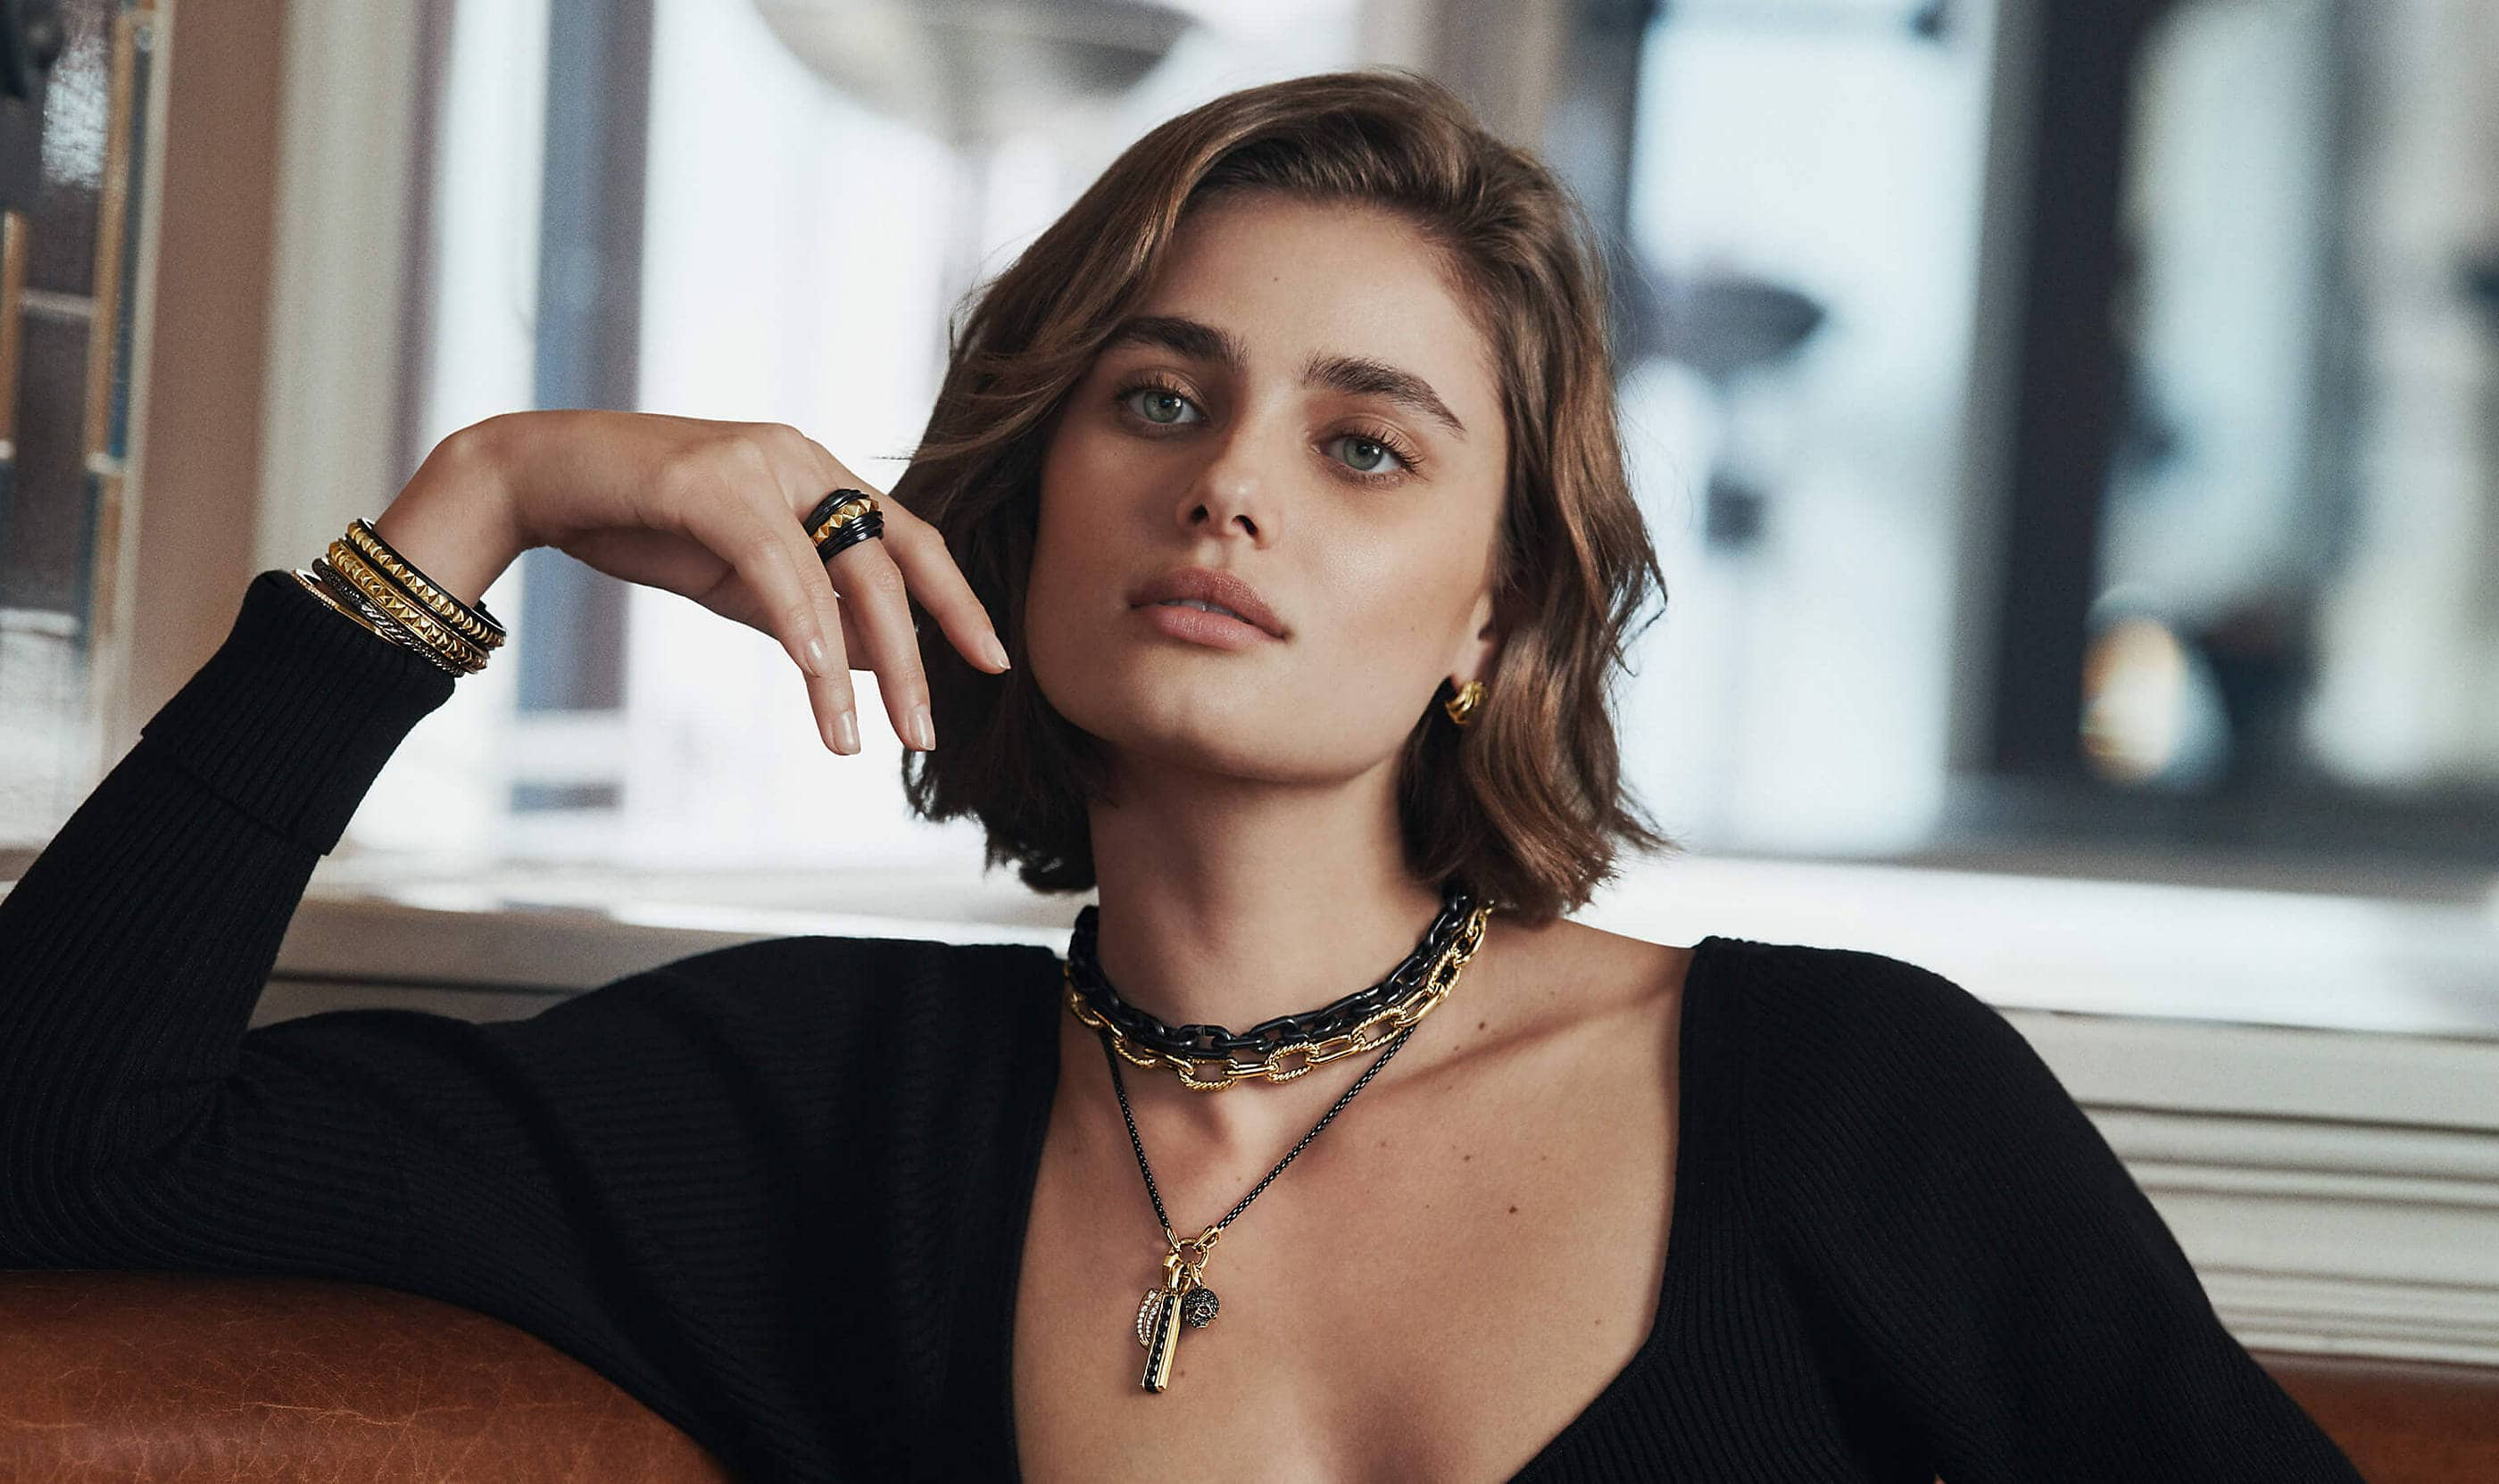 A color photo shows model Taylor Hill from the shoulders up dressed in a black top in front of a sunlit window. She's wearing a pair of David Yurman huggie hoop earrings, a ring, three chain necklaces including one strung with three amulets and a stack of bracelets on one hand. The jewelry is crafted from 18K yellow gold with or without black titanium or white or black diamonds.